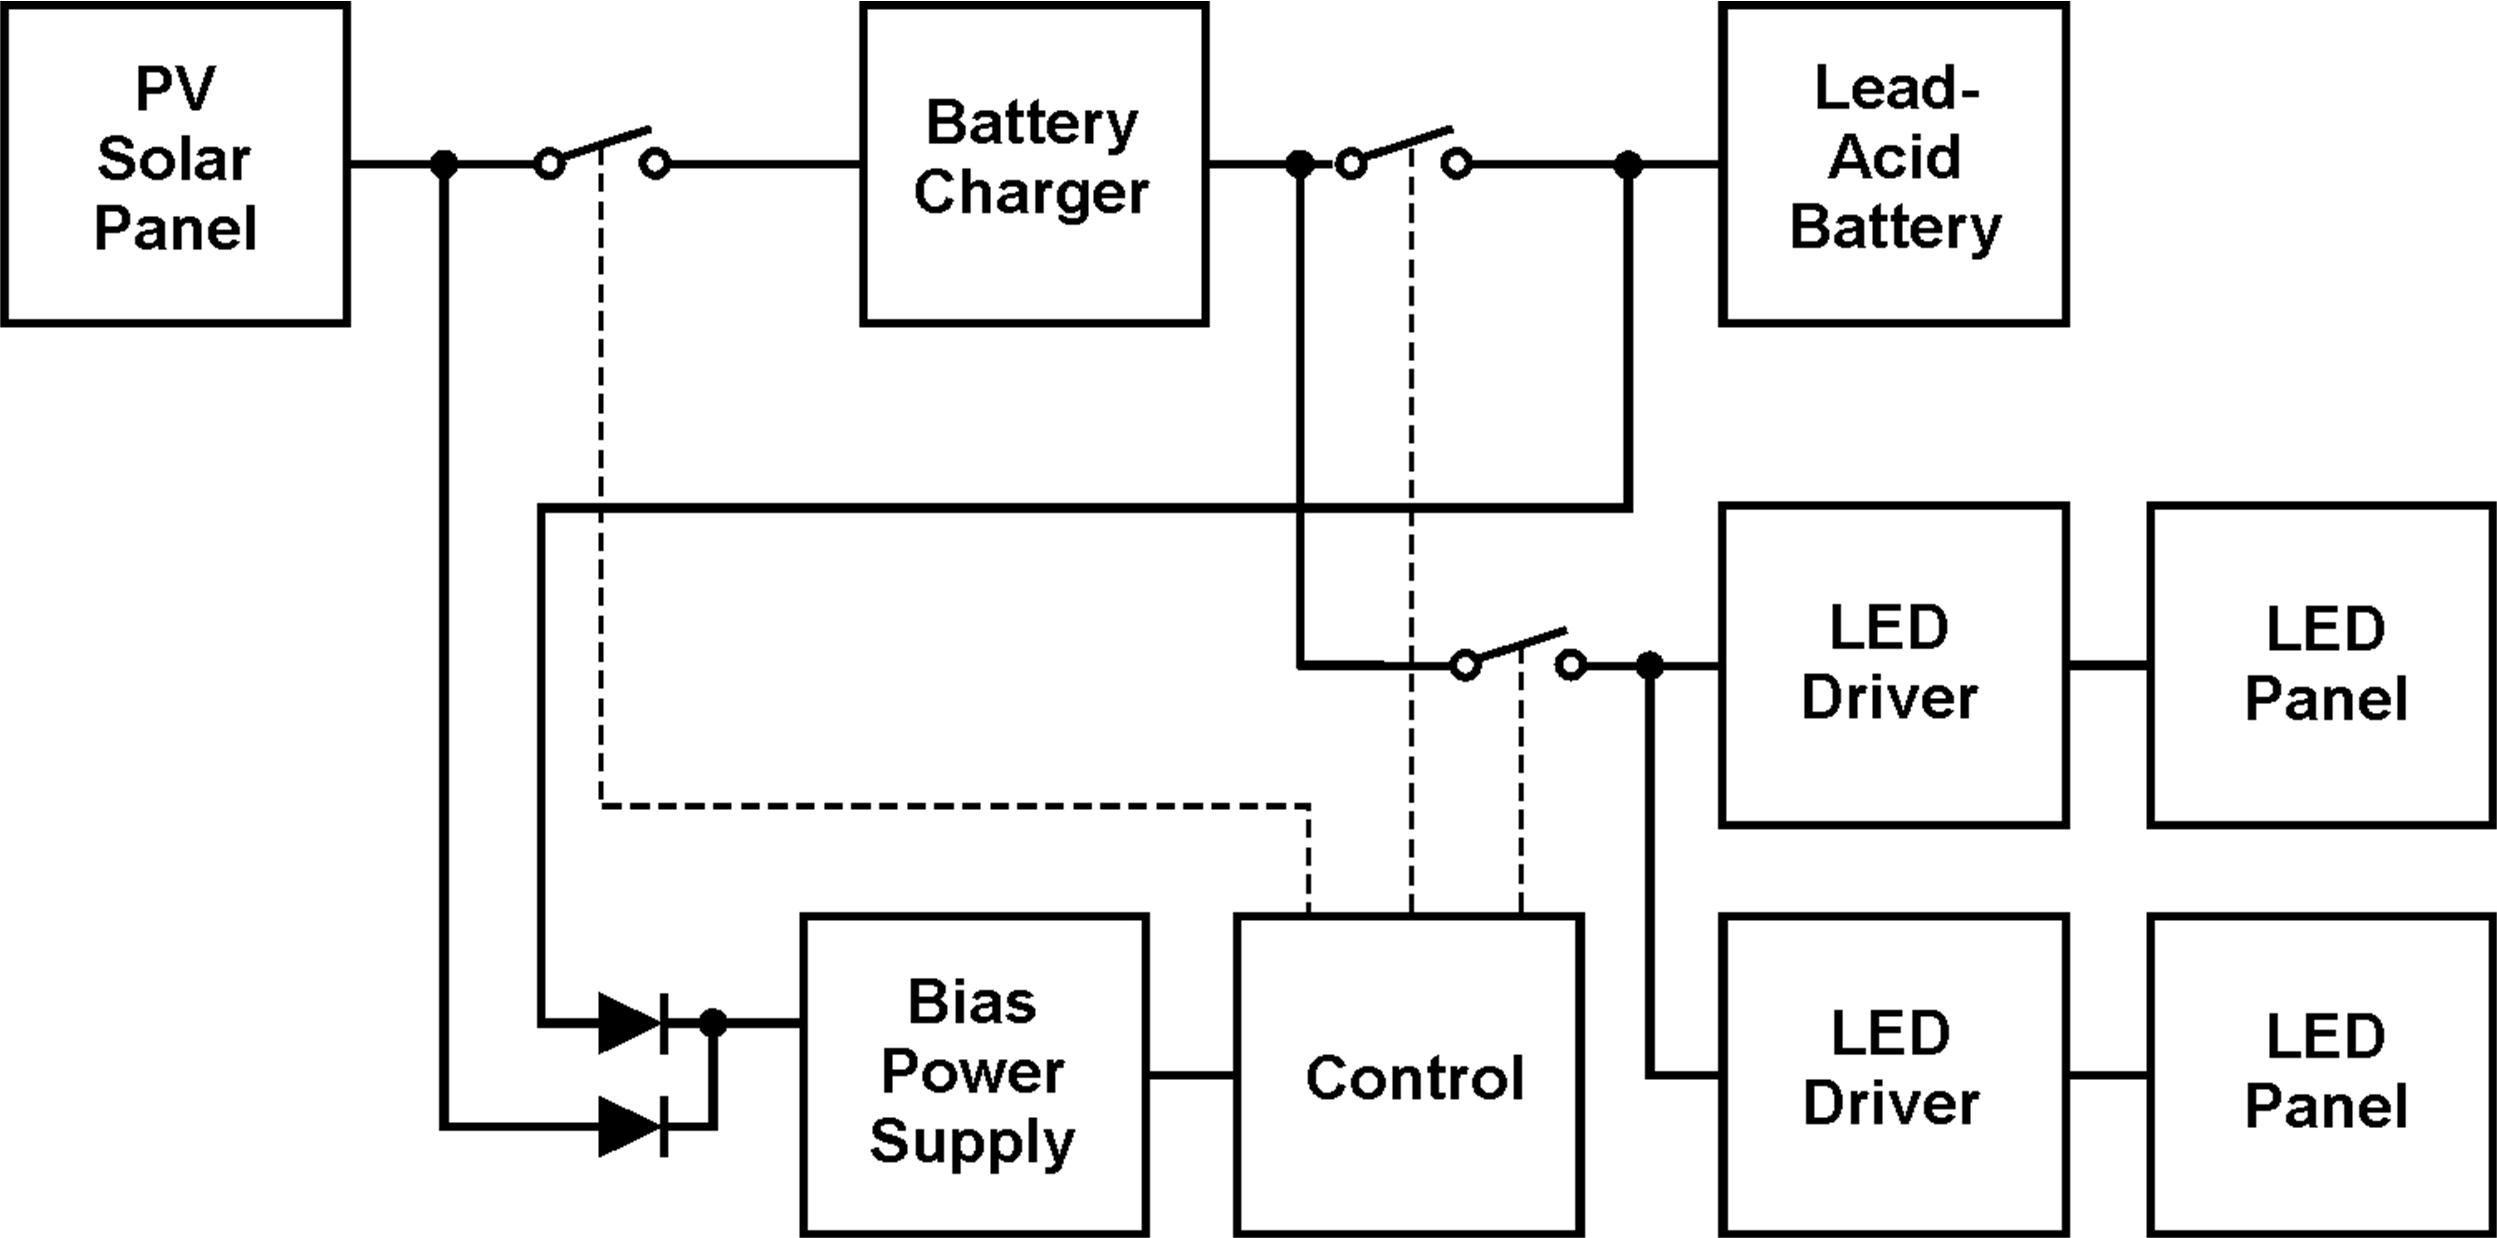 power tips solar panel lighting requires a system level approach rh e2e ti com lighting control wiring diagram lighting control diagram with photocell pdf